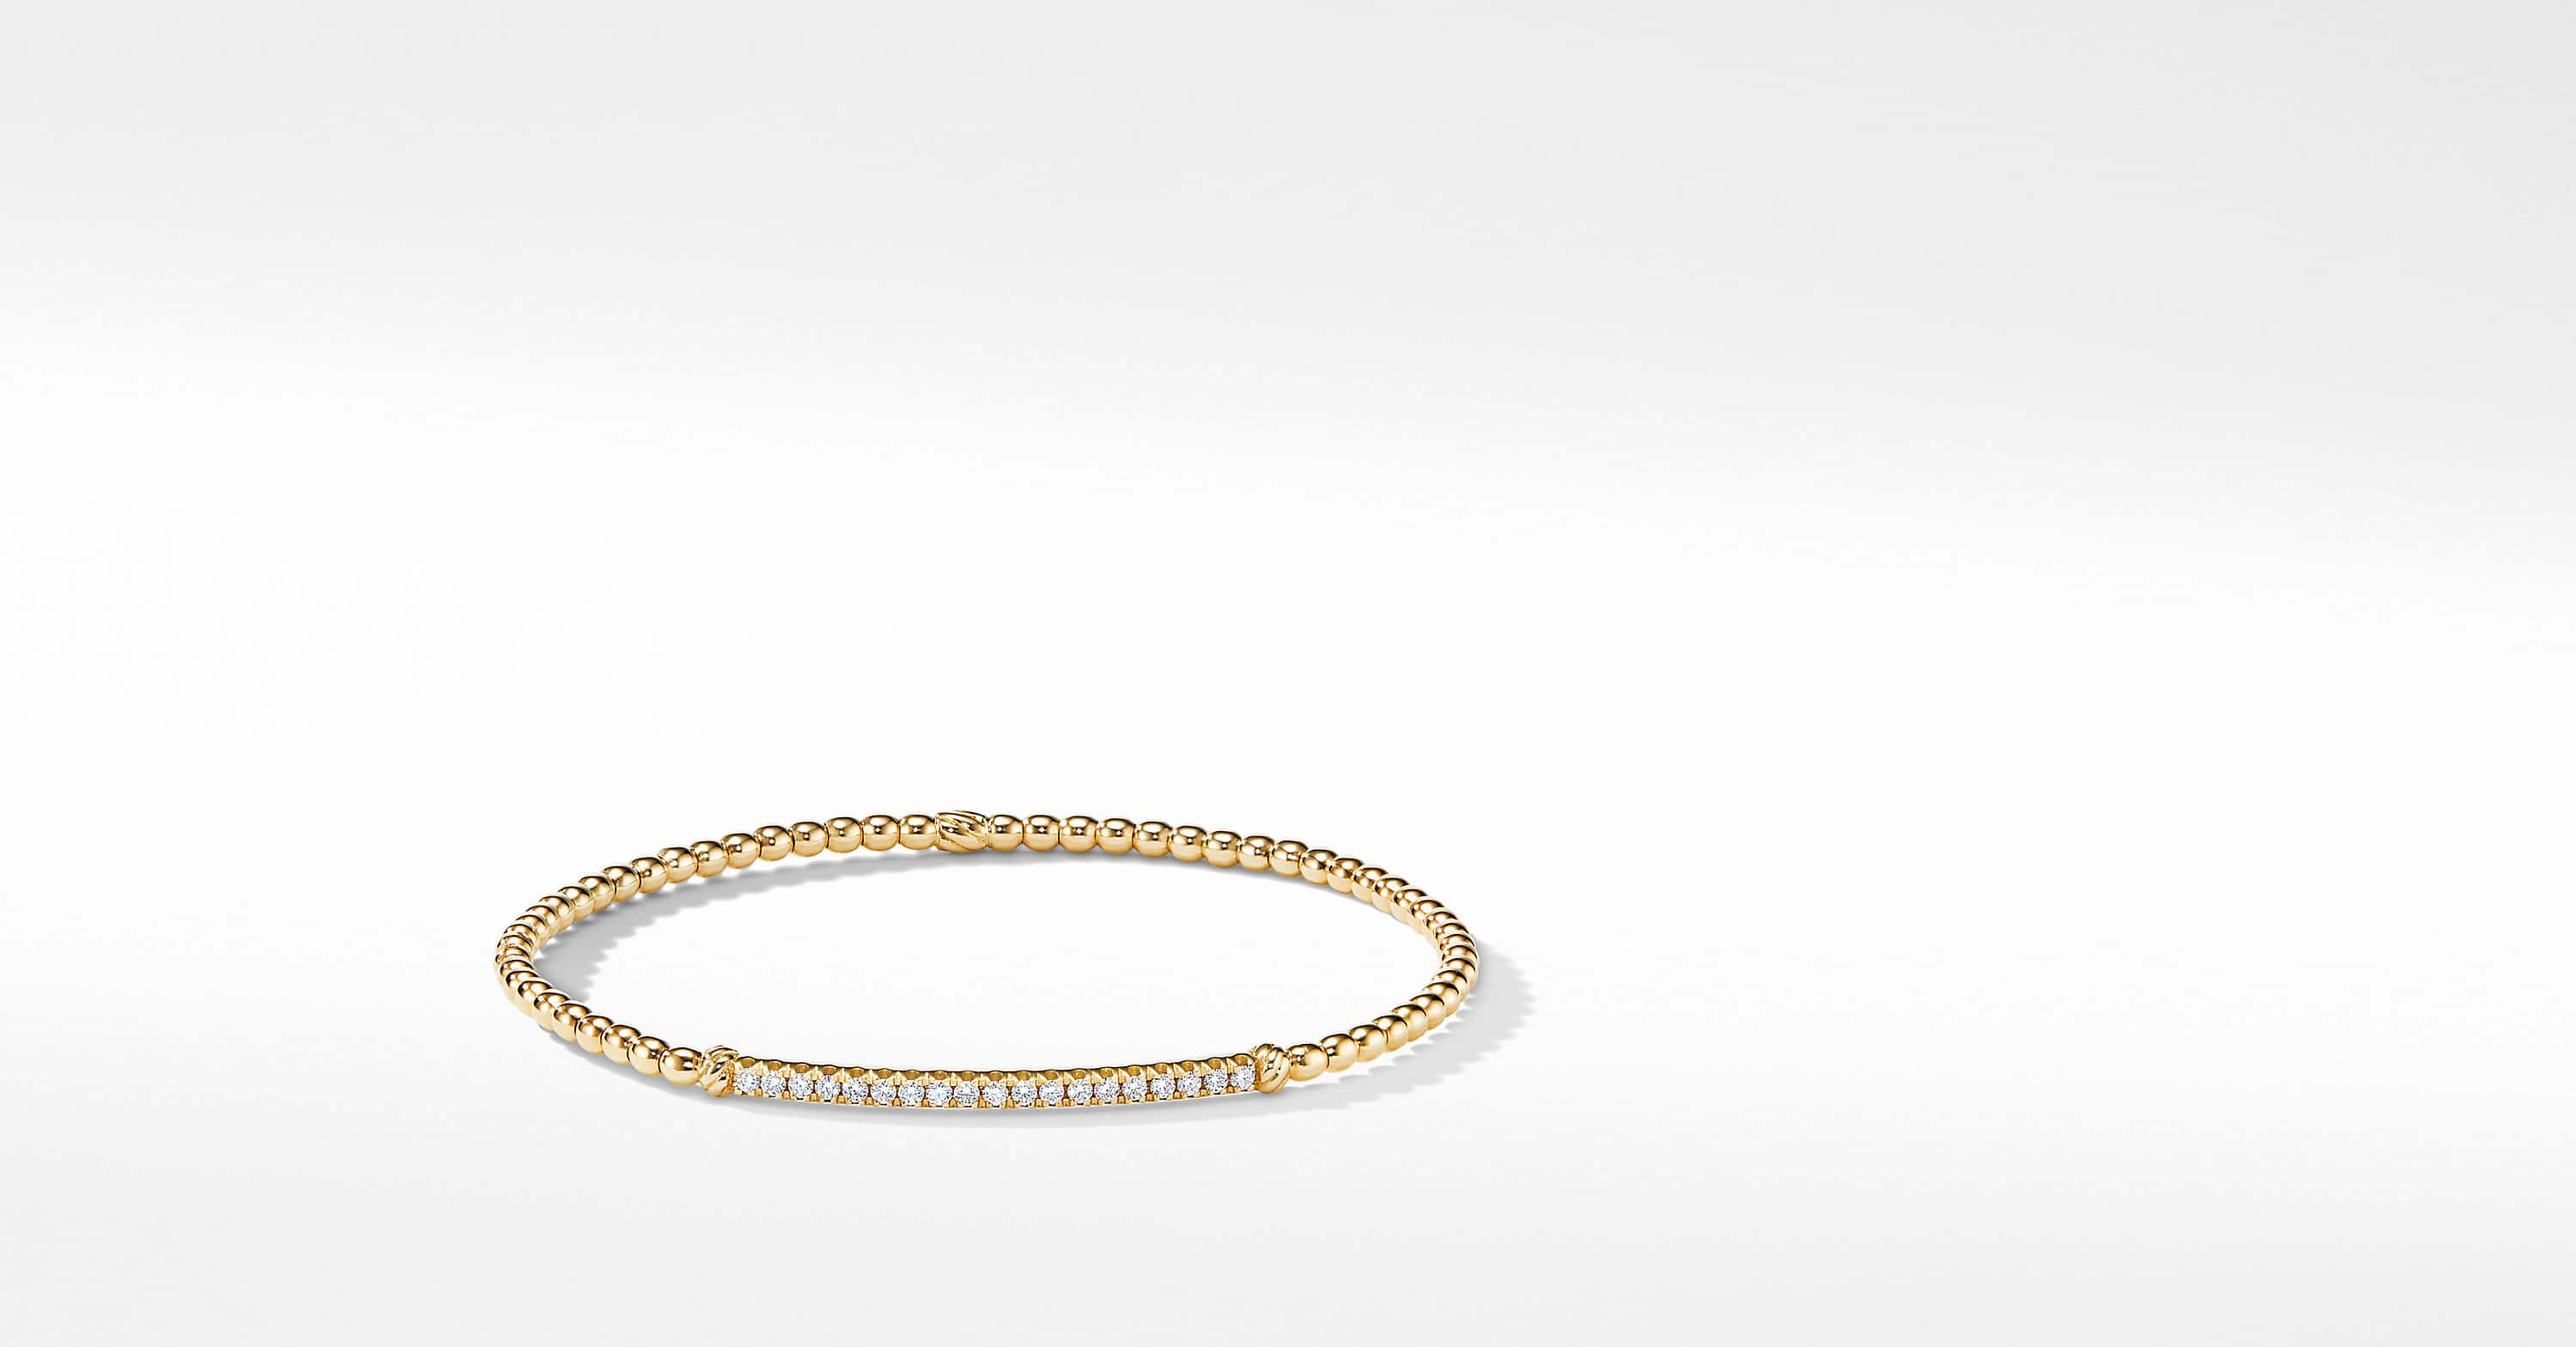 Petite Pavéflex Bracelet in 18K Yellow Gold